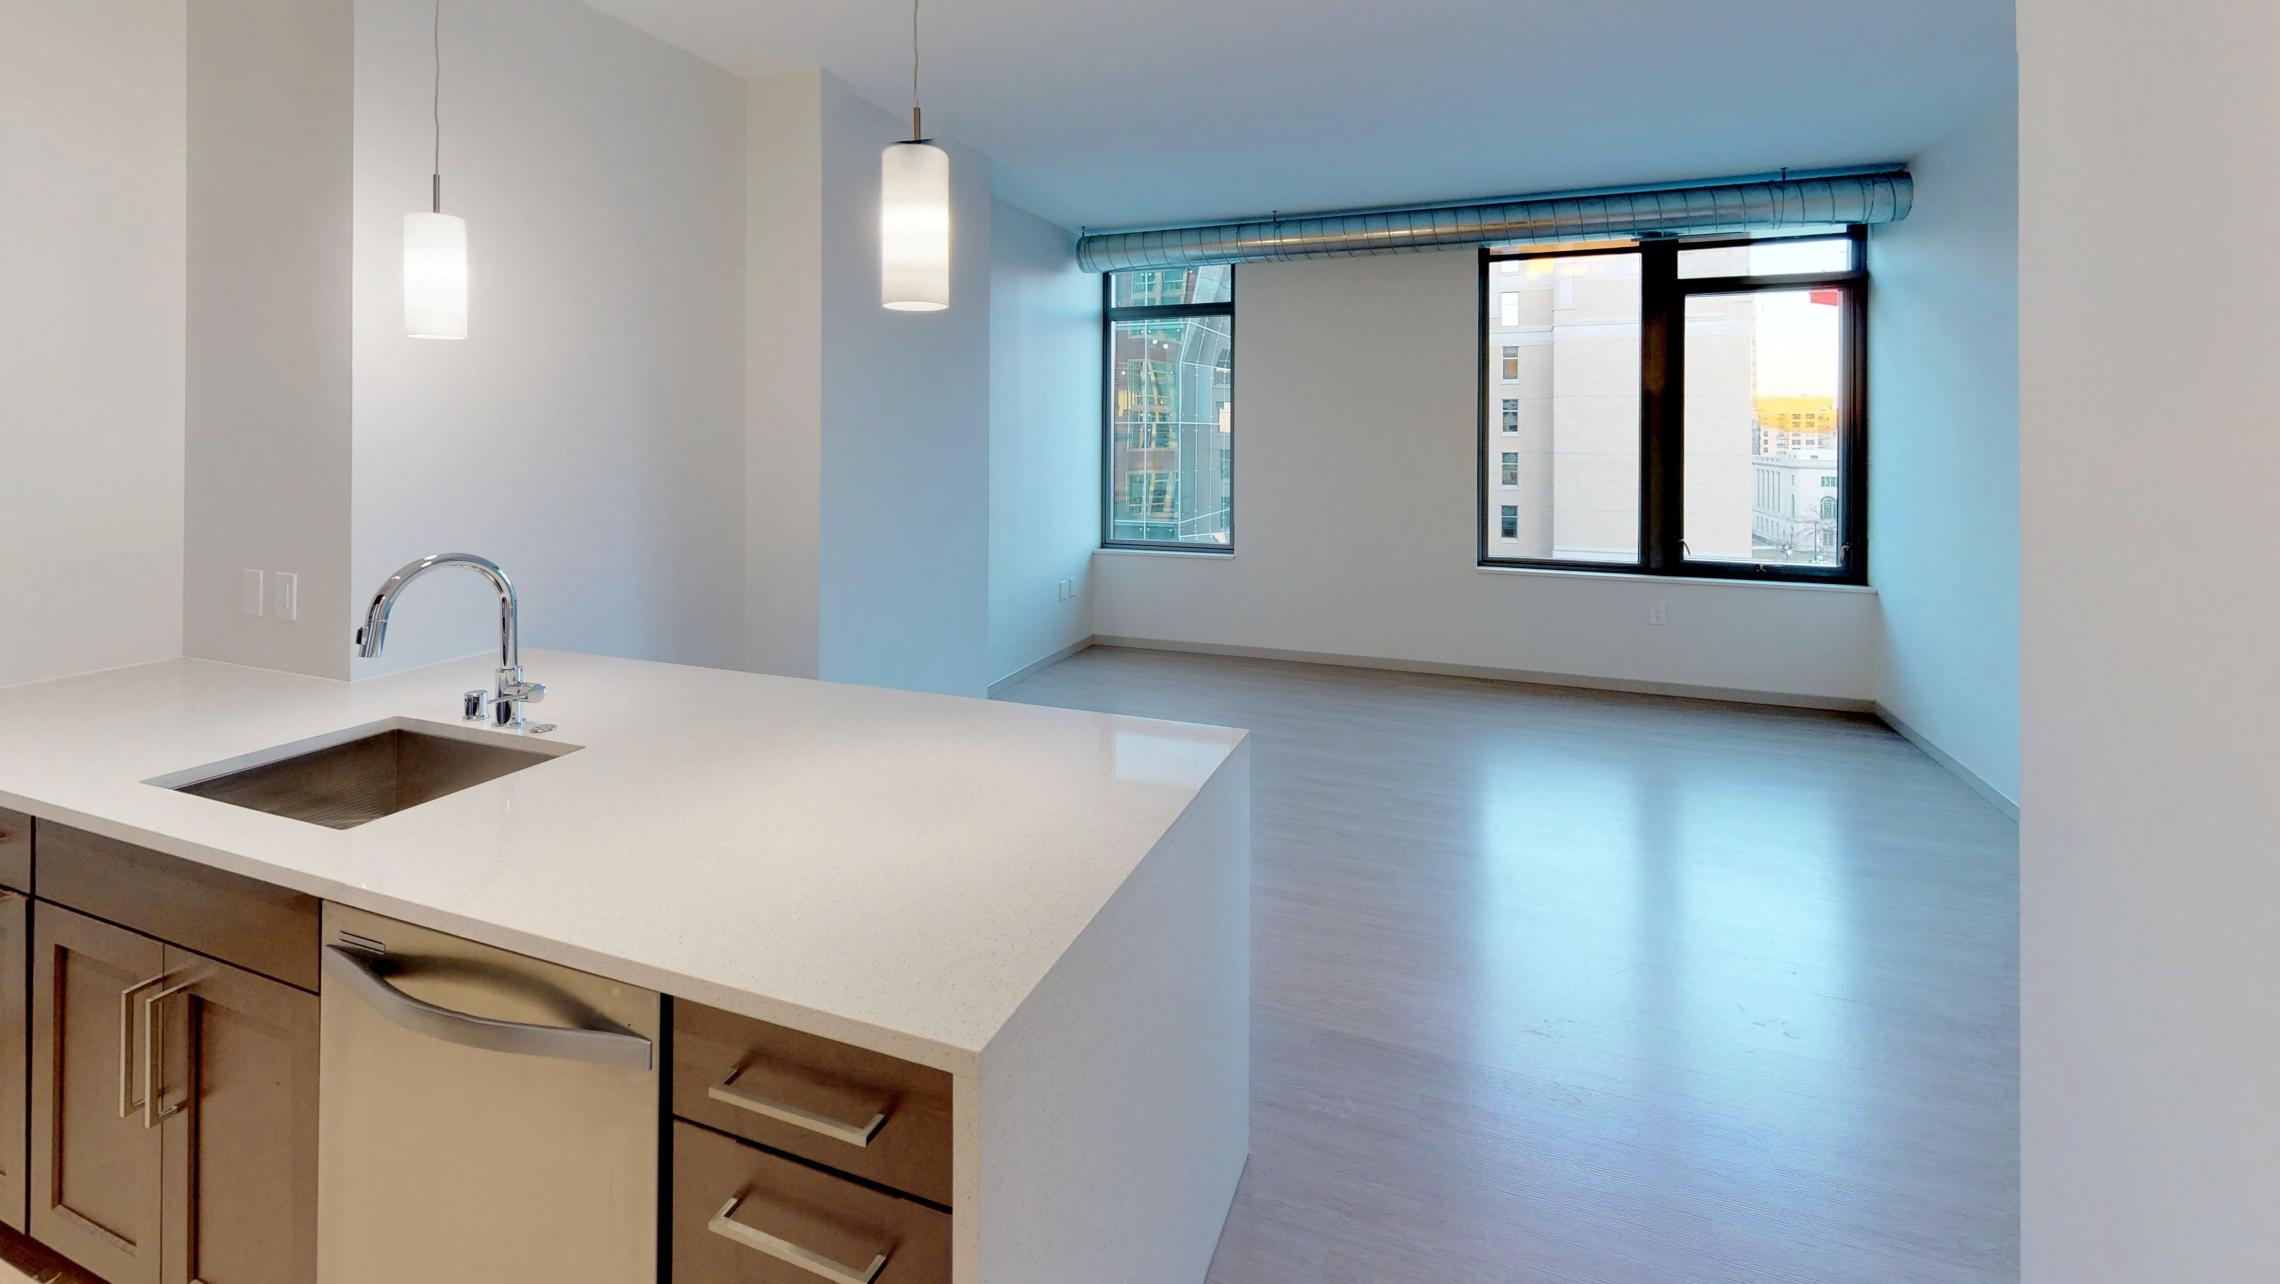 The-Pressman-Apartment-705-One-Bedroom-Modern-Upscale-Luxury-Downtown-Madison-Capitol-Square-Lifestyle-Home.jpg